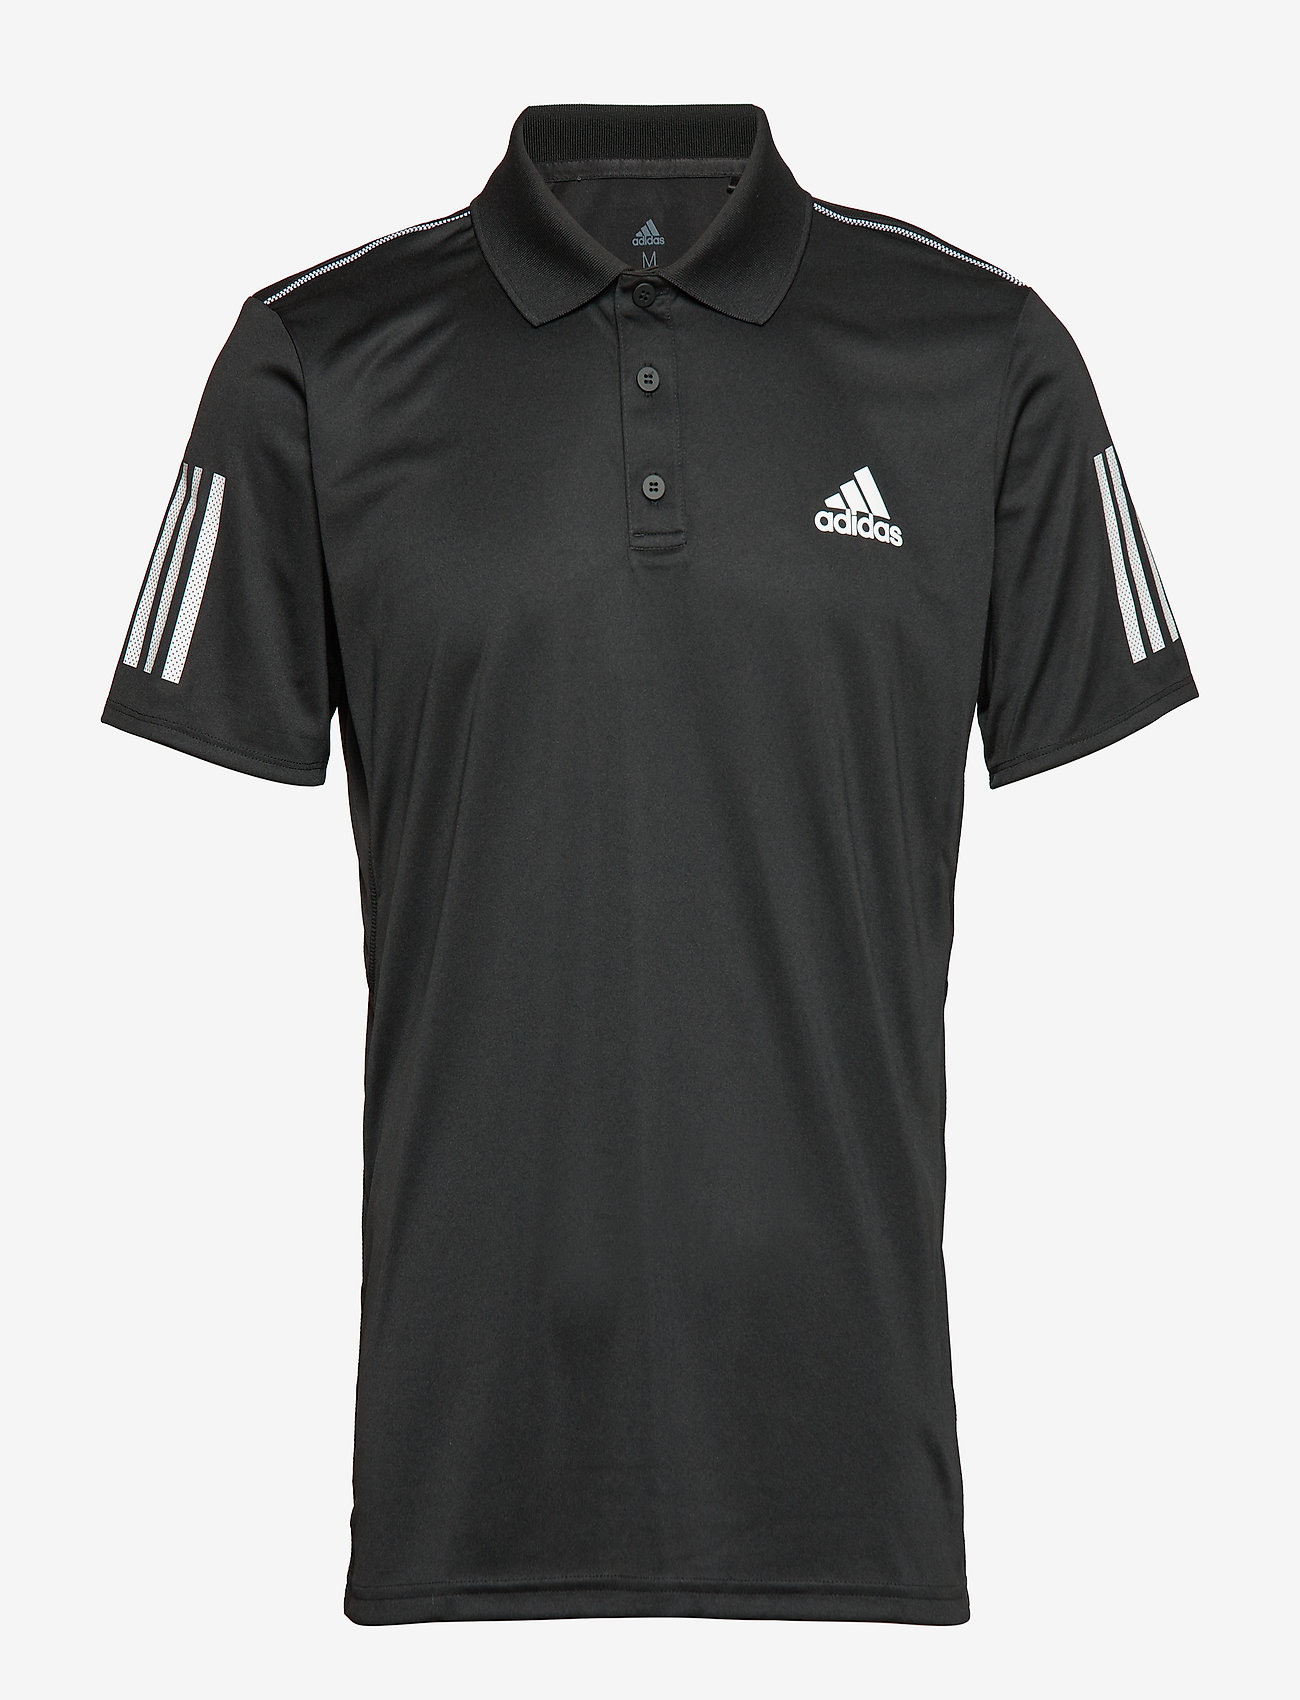 adidas Performance - 3-Stripes Club Polo Shirt - kurzärmelig - black - 1